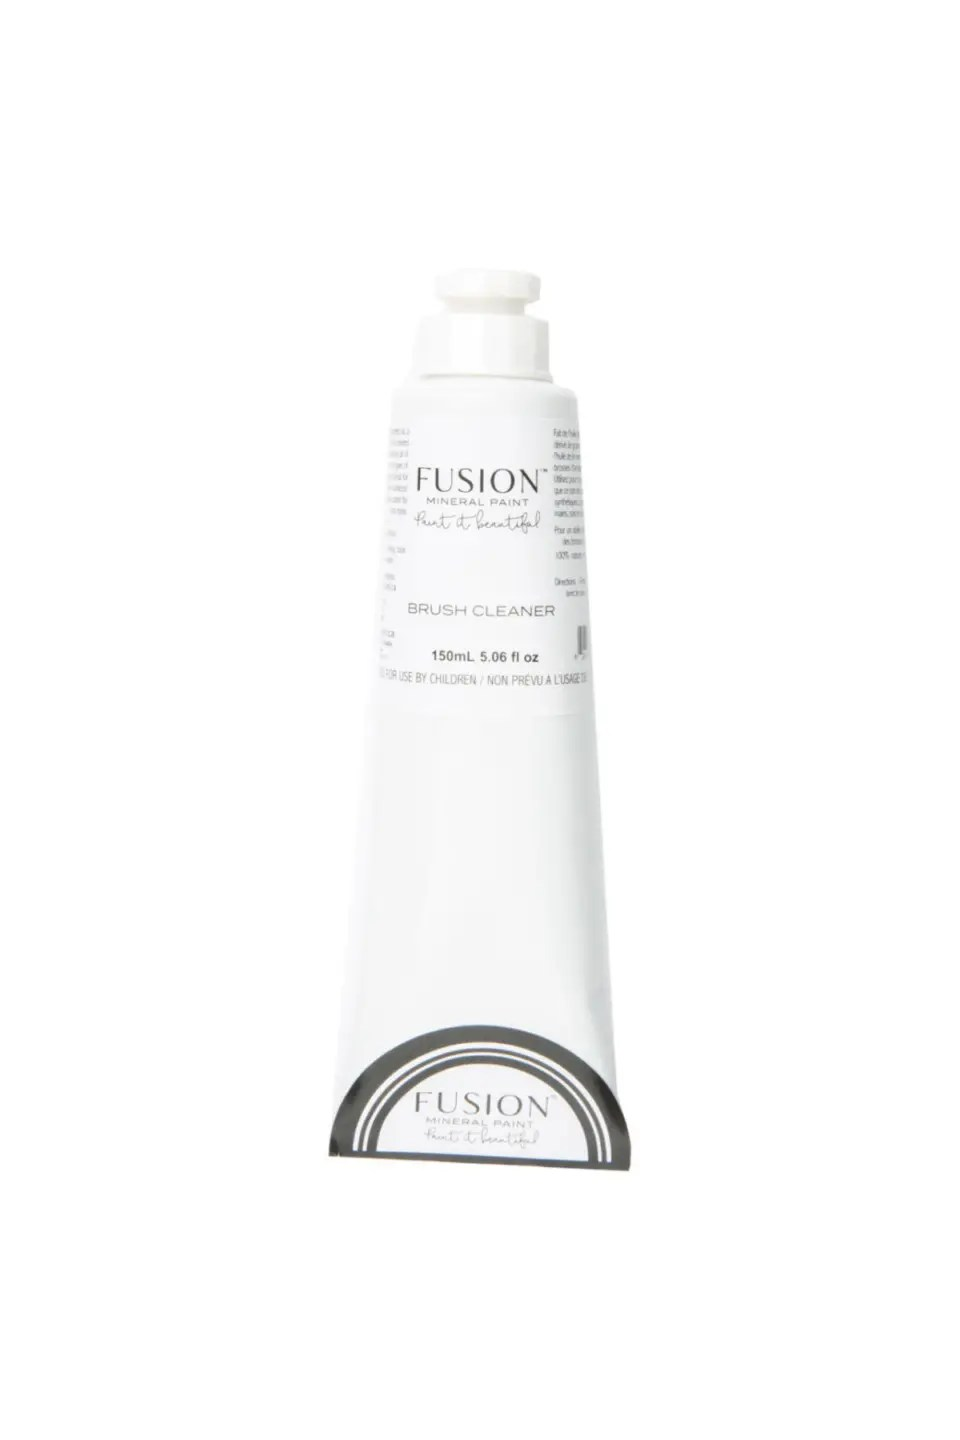 Fusion Mineral Paint Brush cleaner Soap